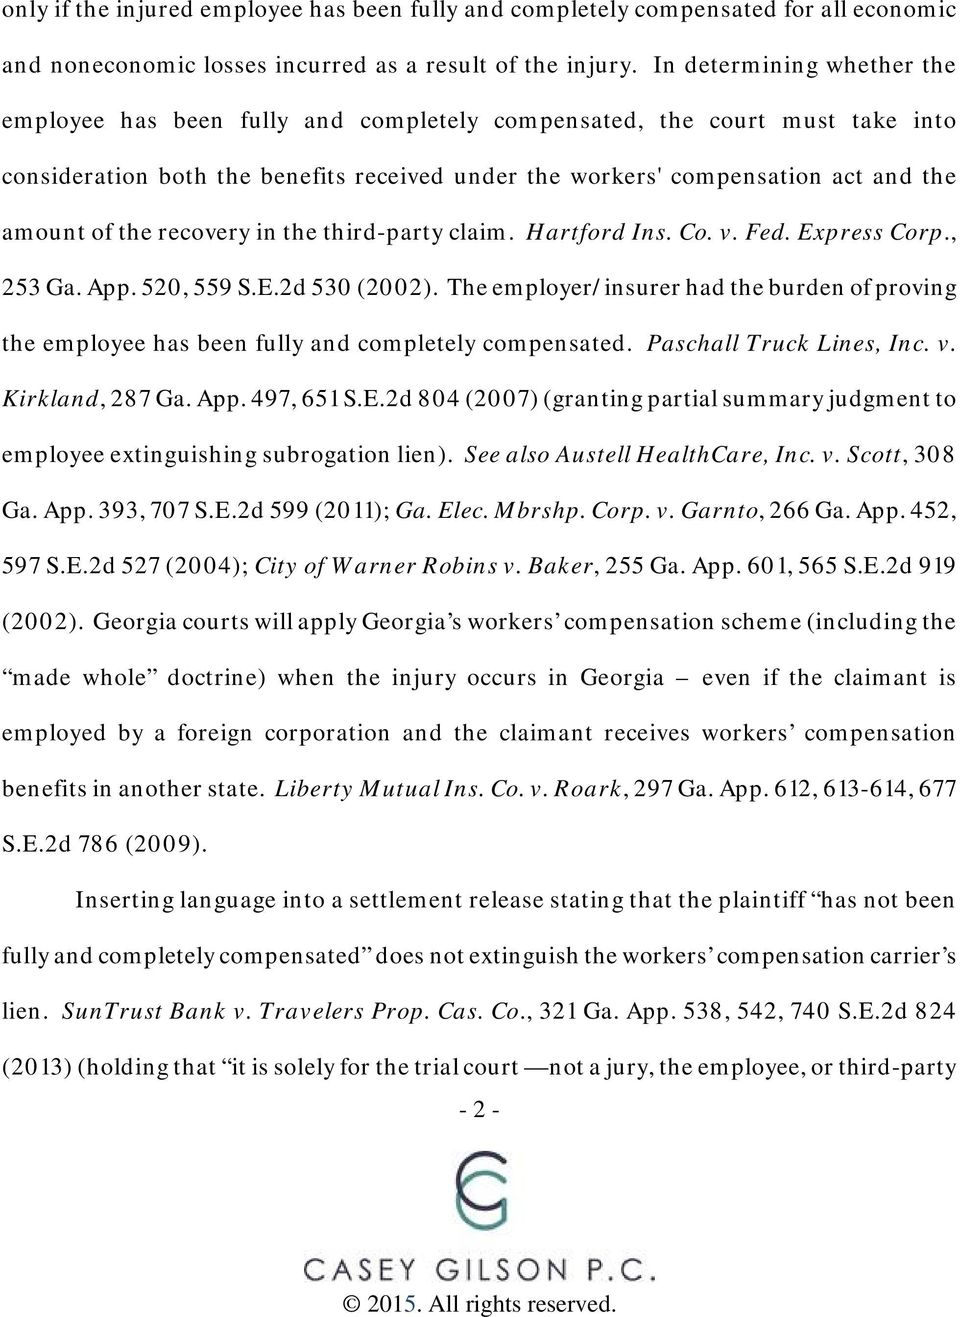 the recovery in the third-party claim. Hartford Ins. Co. v. Fed. Express Corp., 253 Ga. App. 520, 559 S.E.2d 530 (2002).